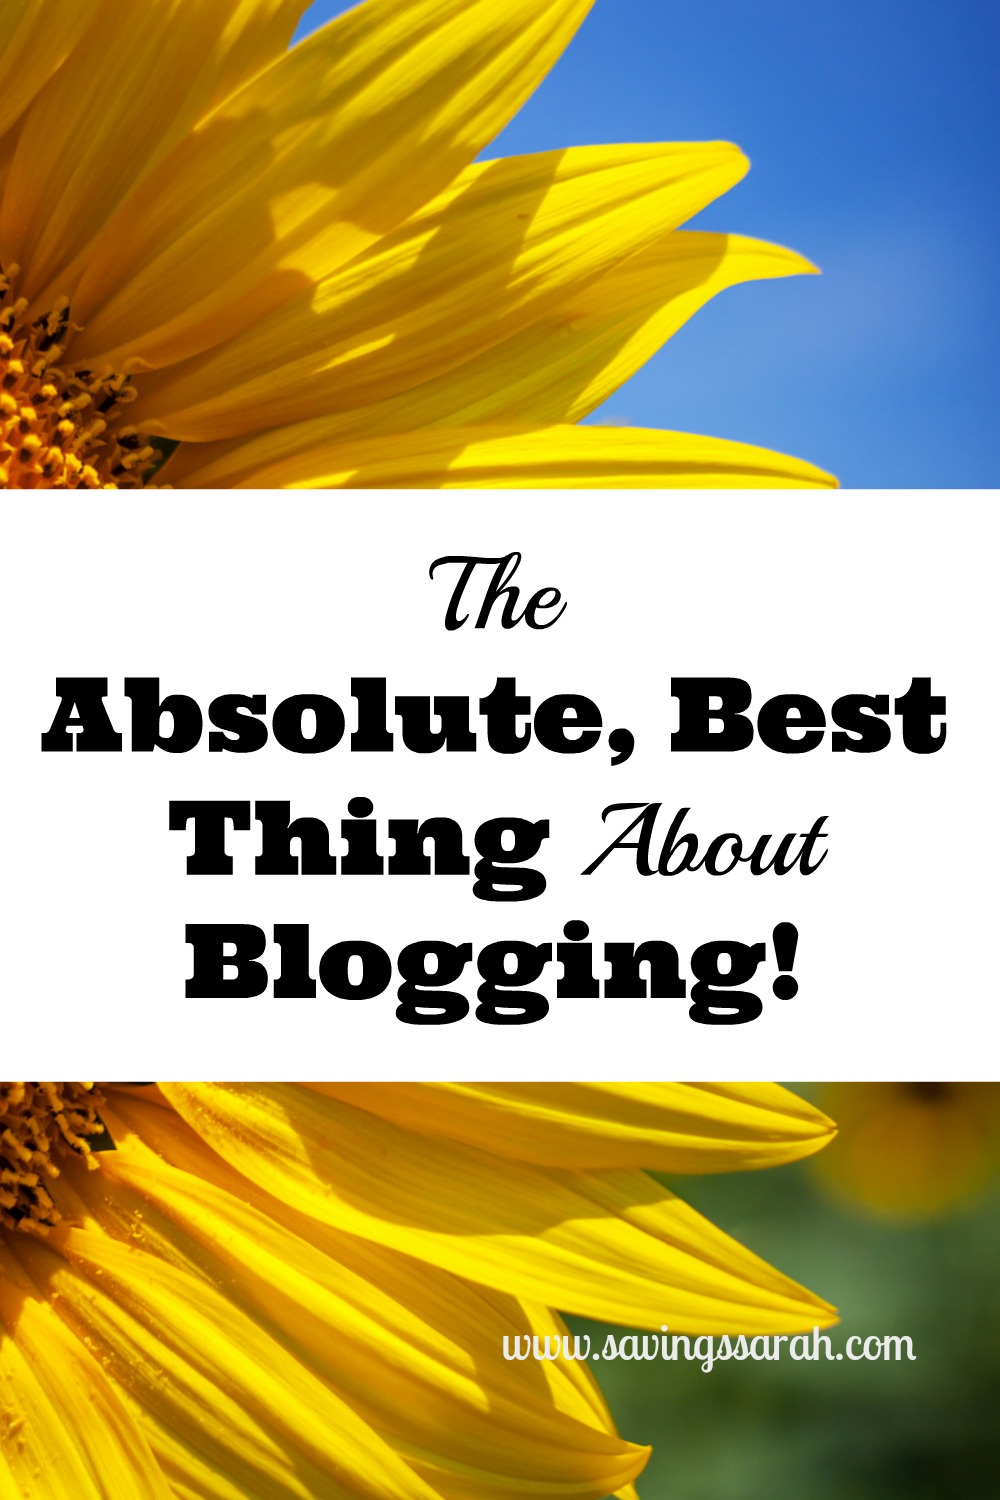 The Absolute, Best Thing About Blogging